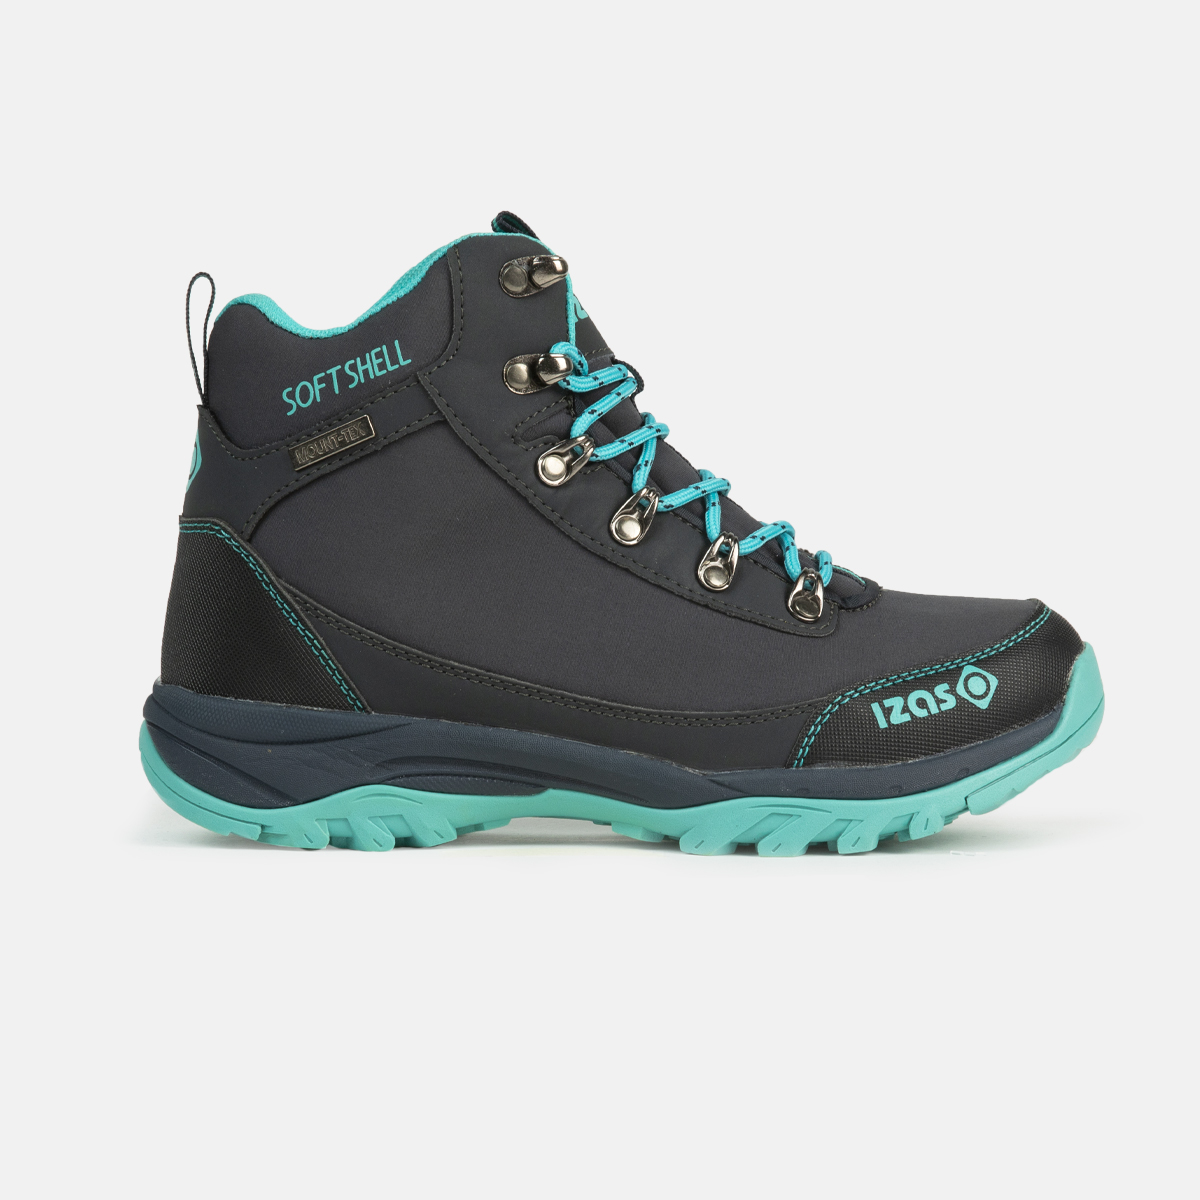 WOMAN'S LEZAT HIKING BOOTS GREY